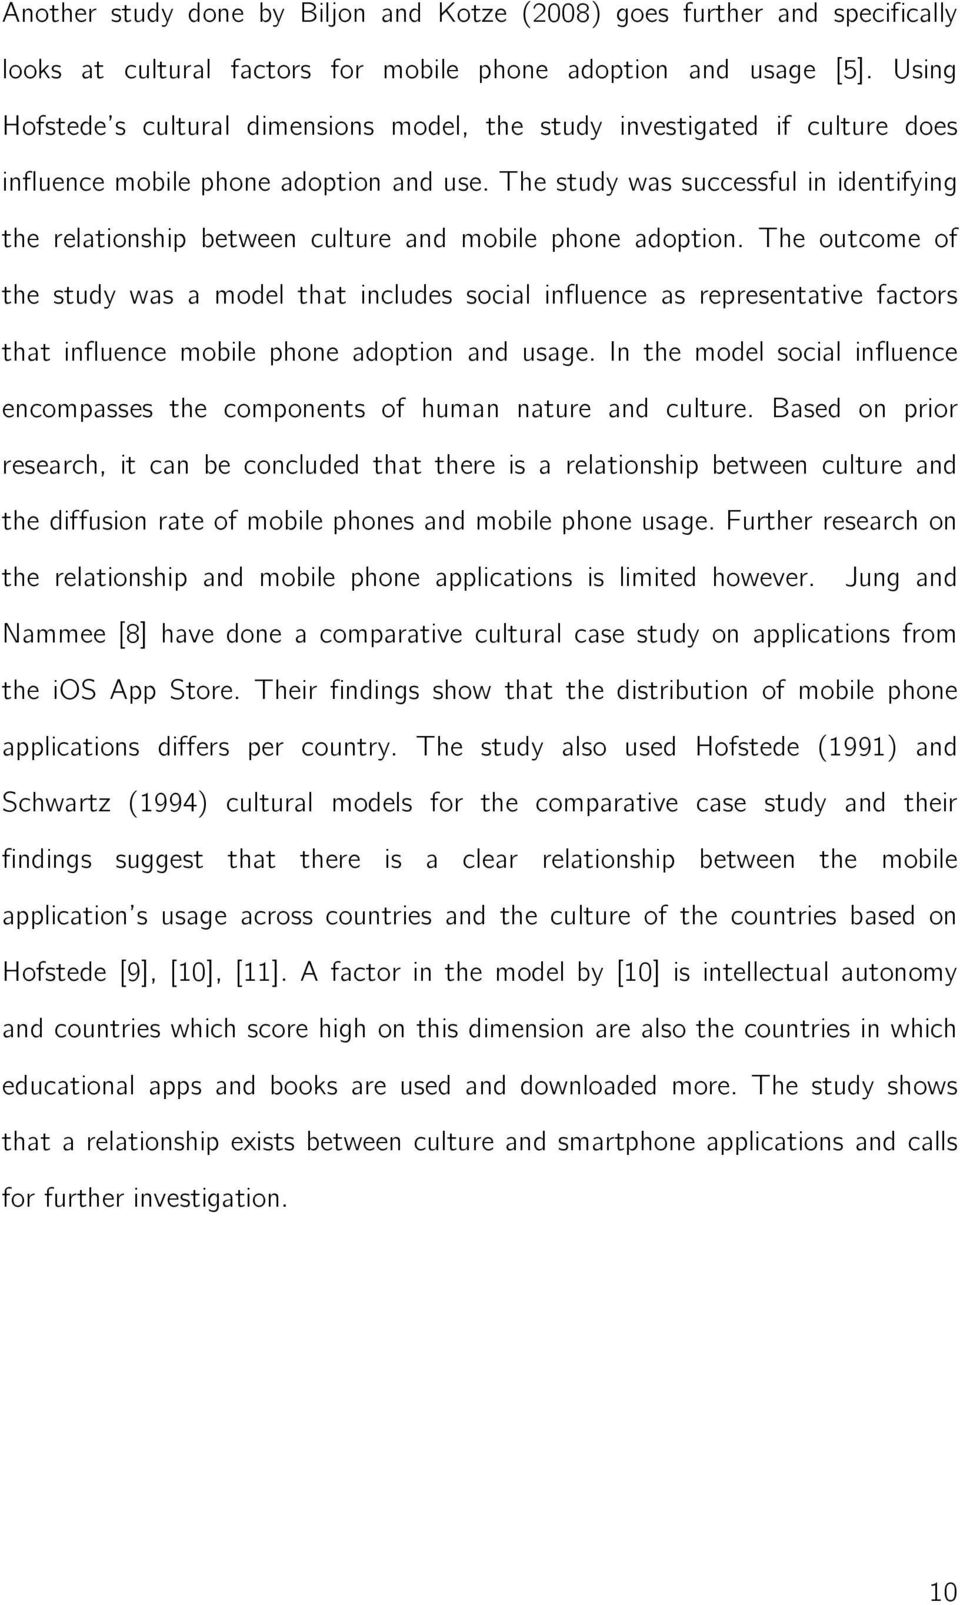 The study was successful in identifying the relationship between culture and mobile phone adoption.